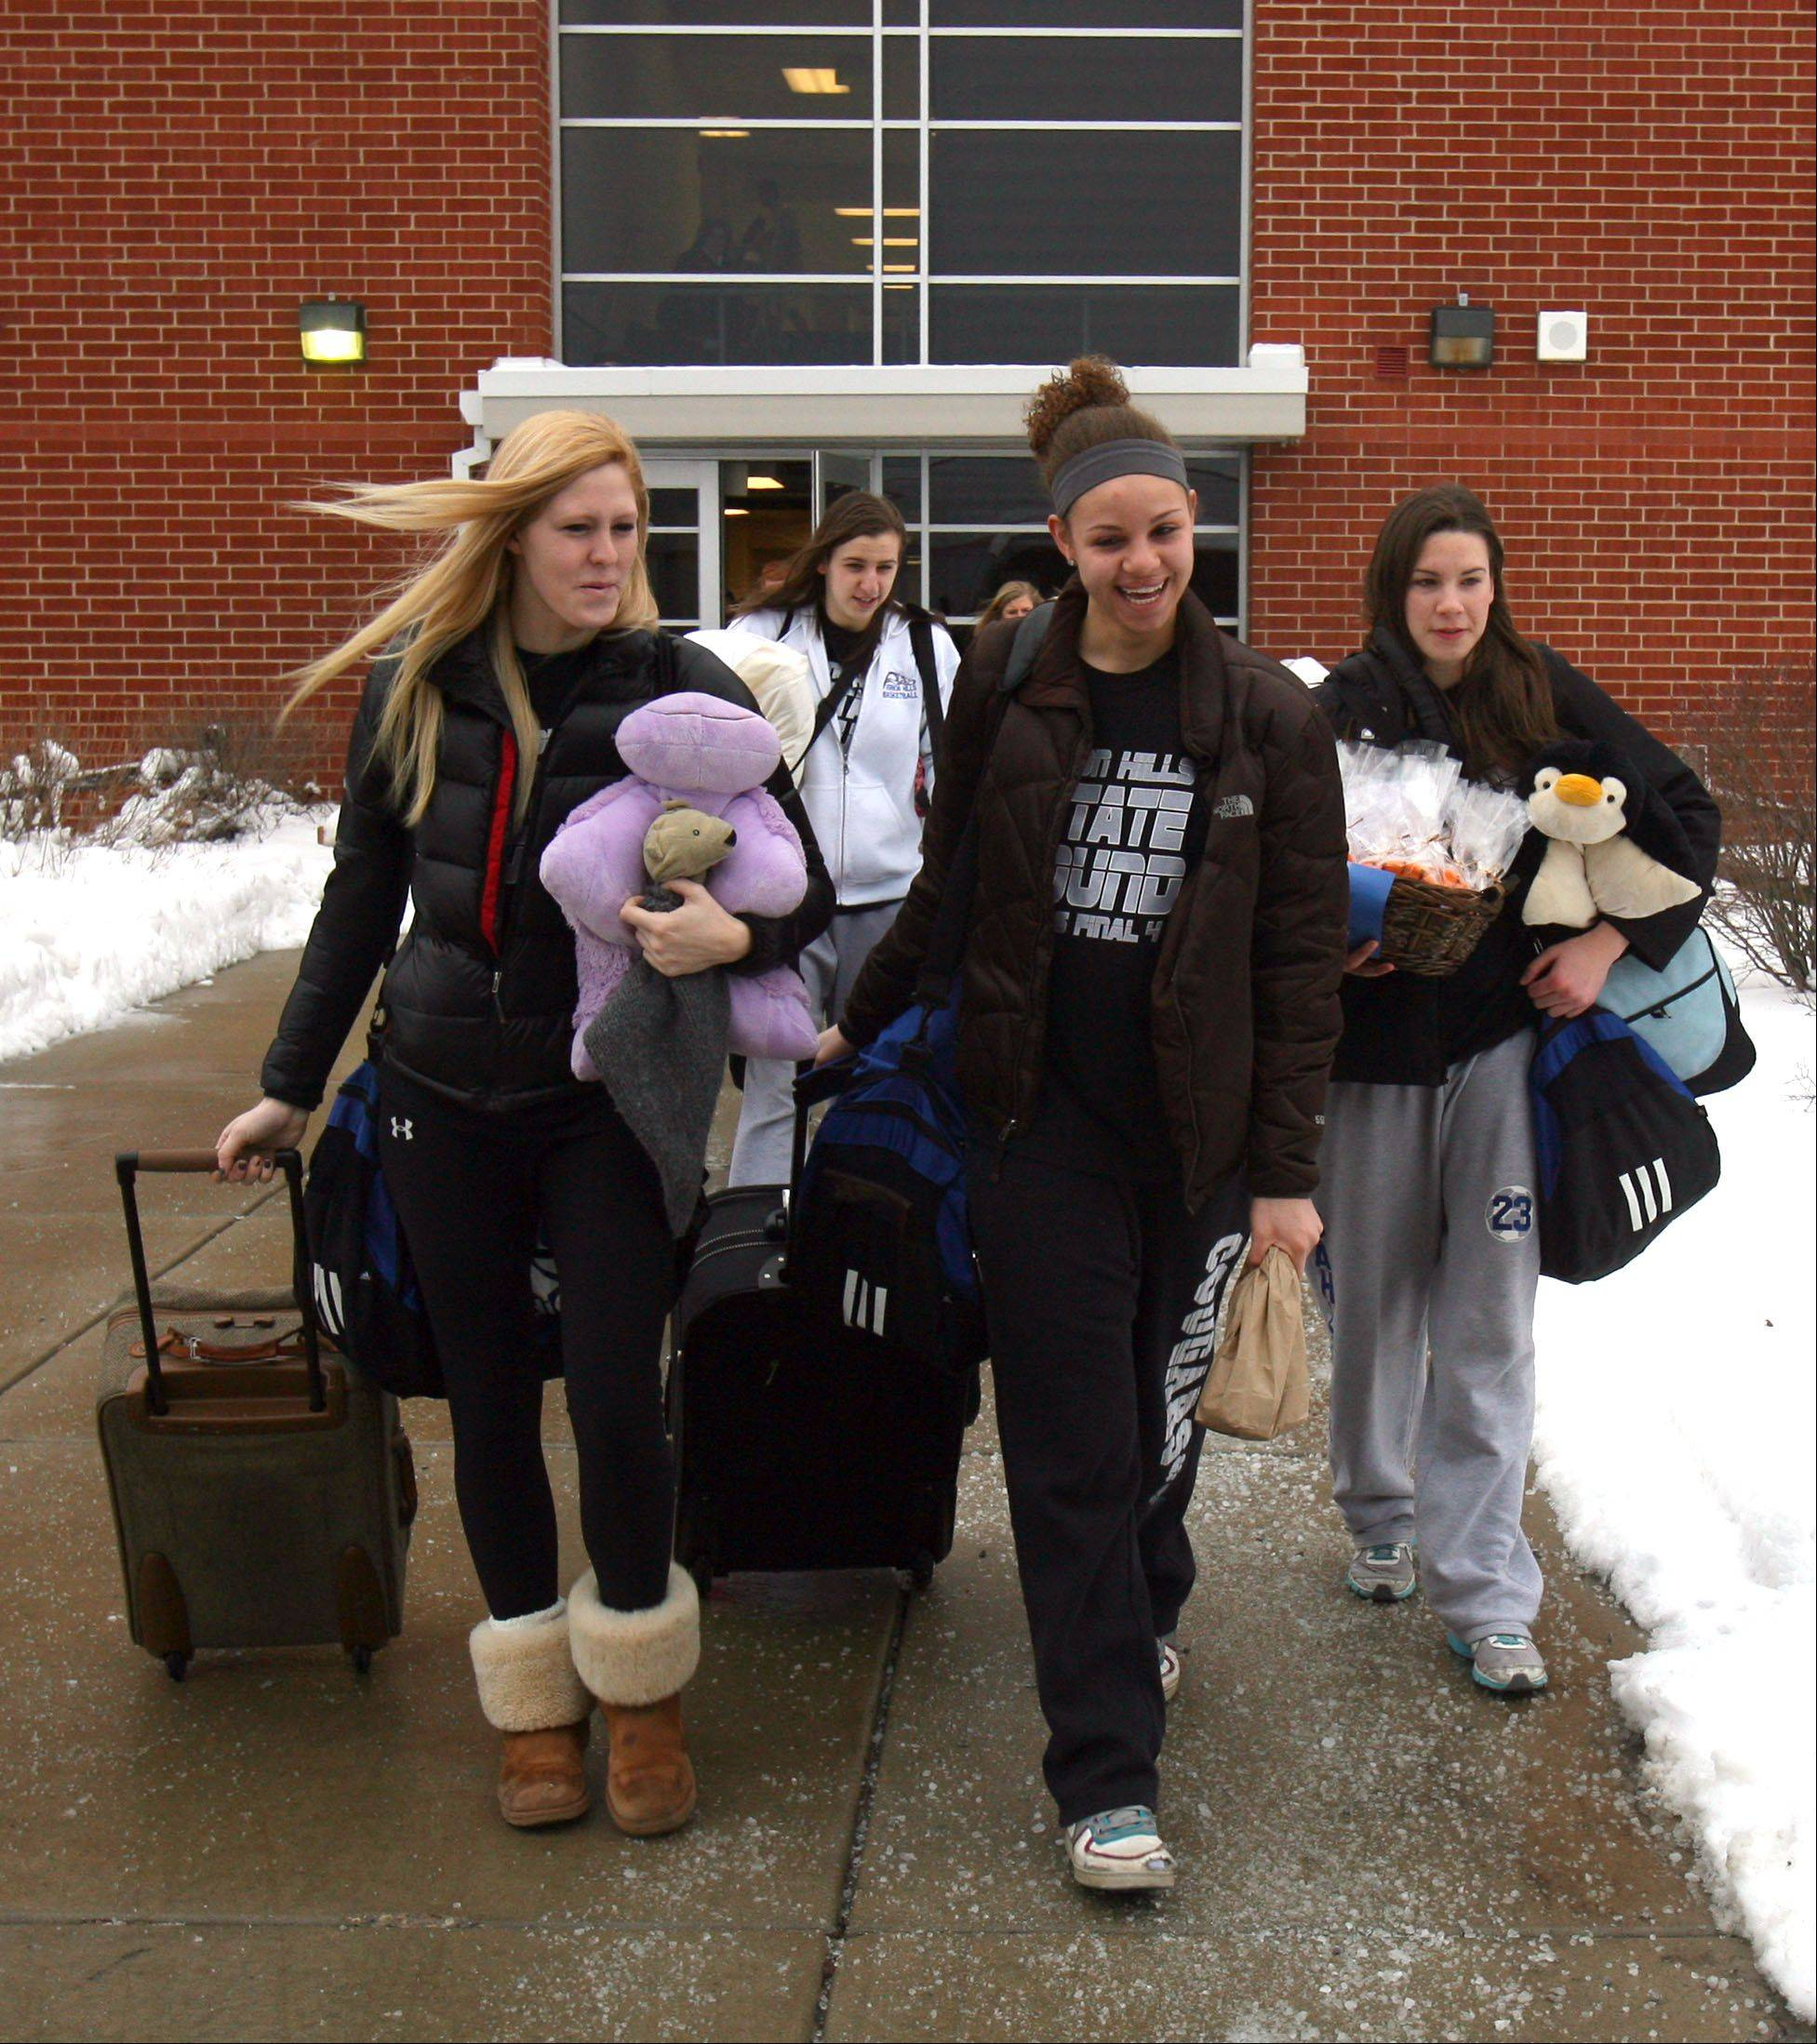 The Vernon Hills High School�s girls basketball team heads to the bus that will take them to the Class 3A girls state basketball tournament at Redbird Arena in Normal this weekend.